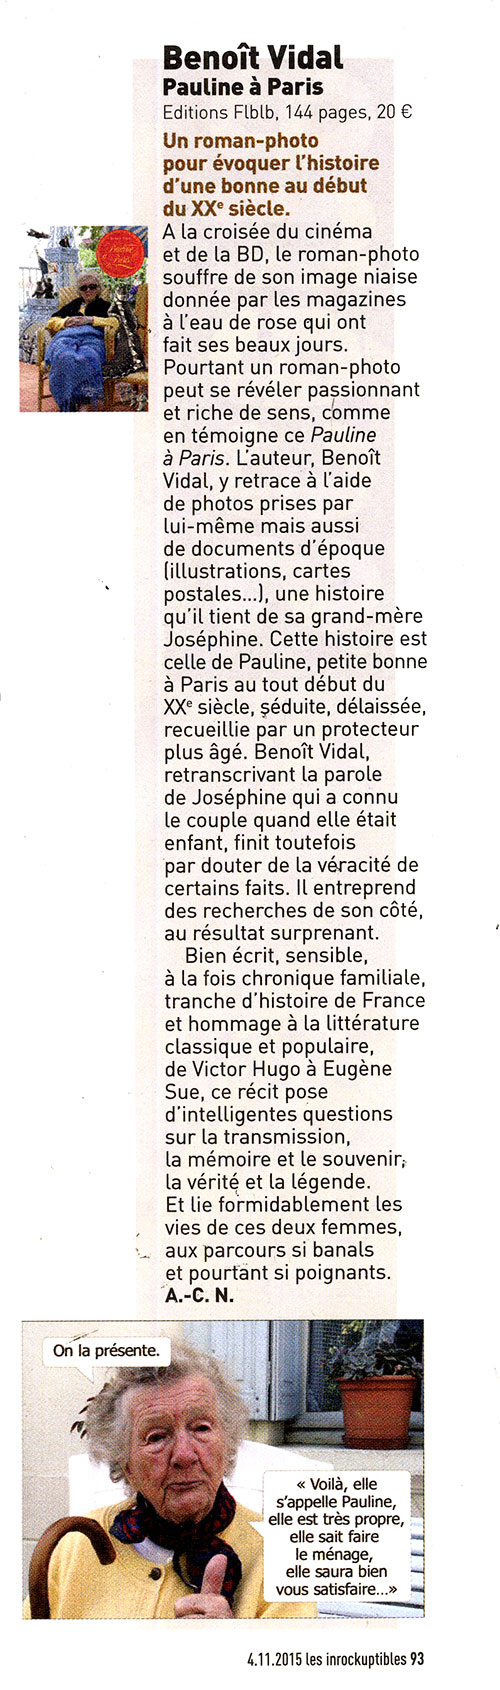 Pauline_a_paris_Inrocks_4nov15